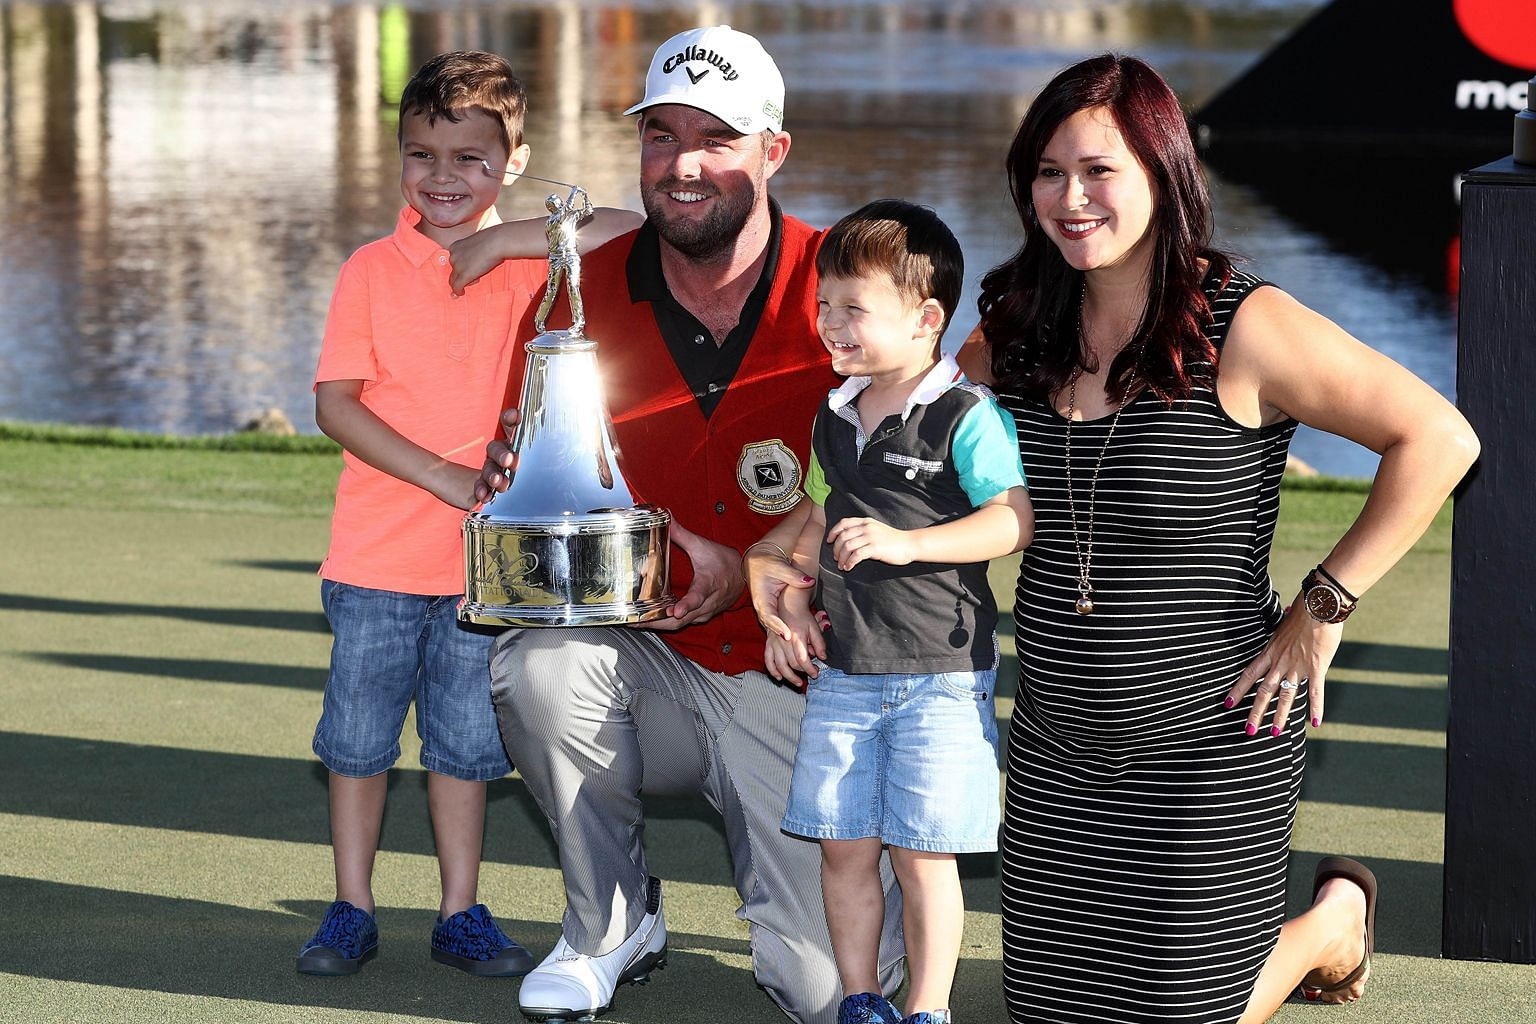 A dream come true for the family as Australian Marc Leishman celebrates with expectant wife Audrey and sons Harvey and Oliver after winning the Arnold Palmer Invitational in Orlando, Florida.